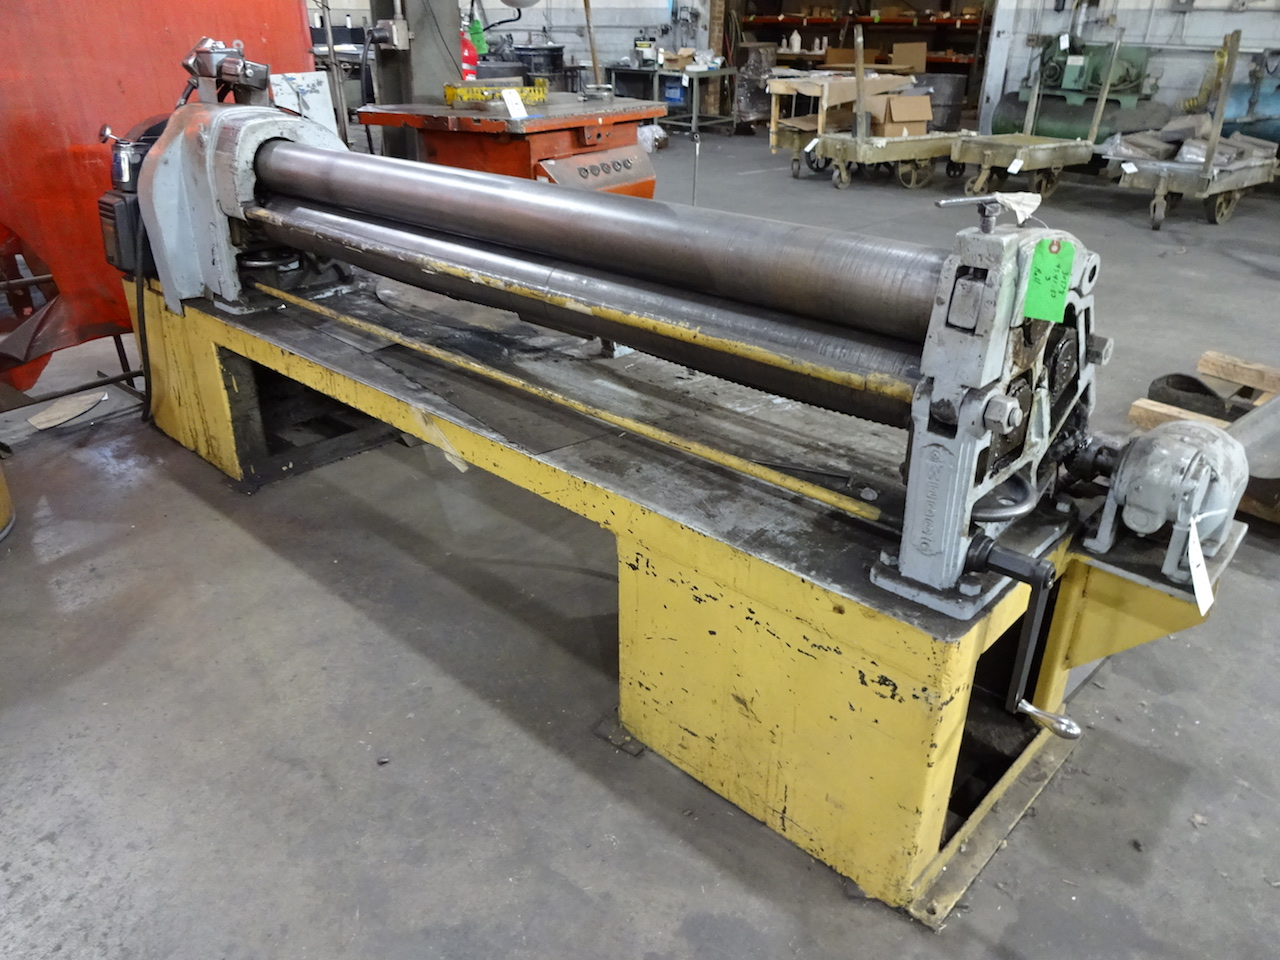 Lot 42 - Webb 6 ft. x 12 ga. Model 2L Bending Roll, S/N 620, 5 in. Dia. Rolls, AC Motor Controls